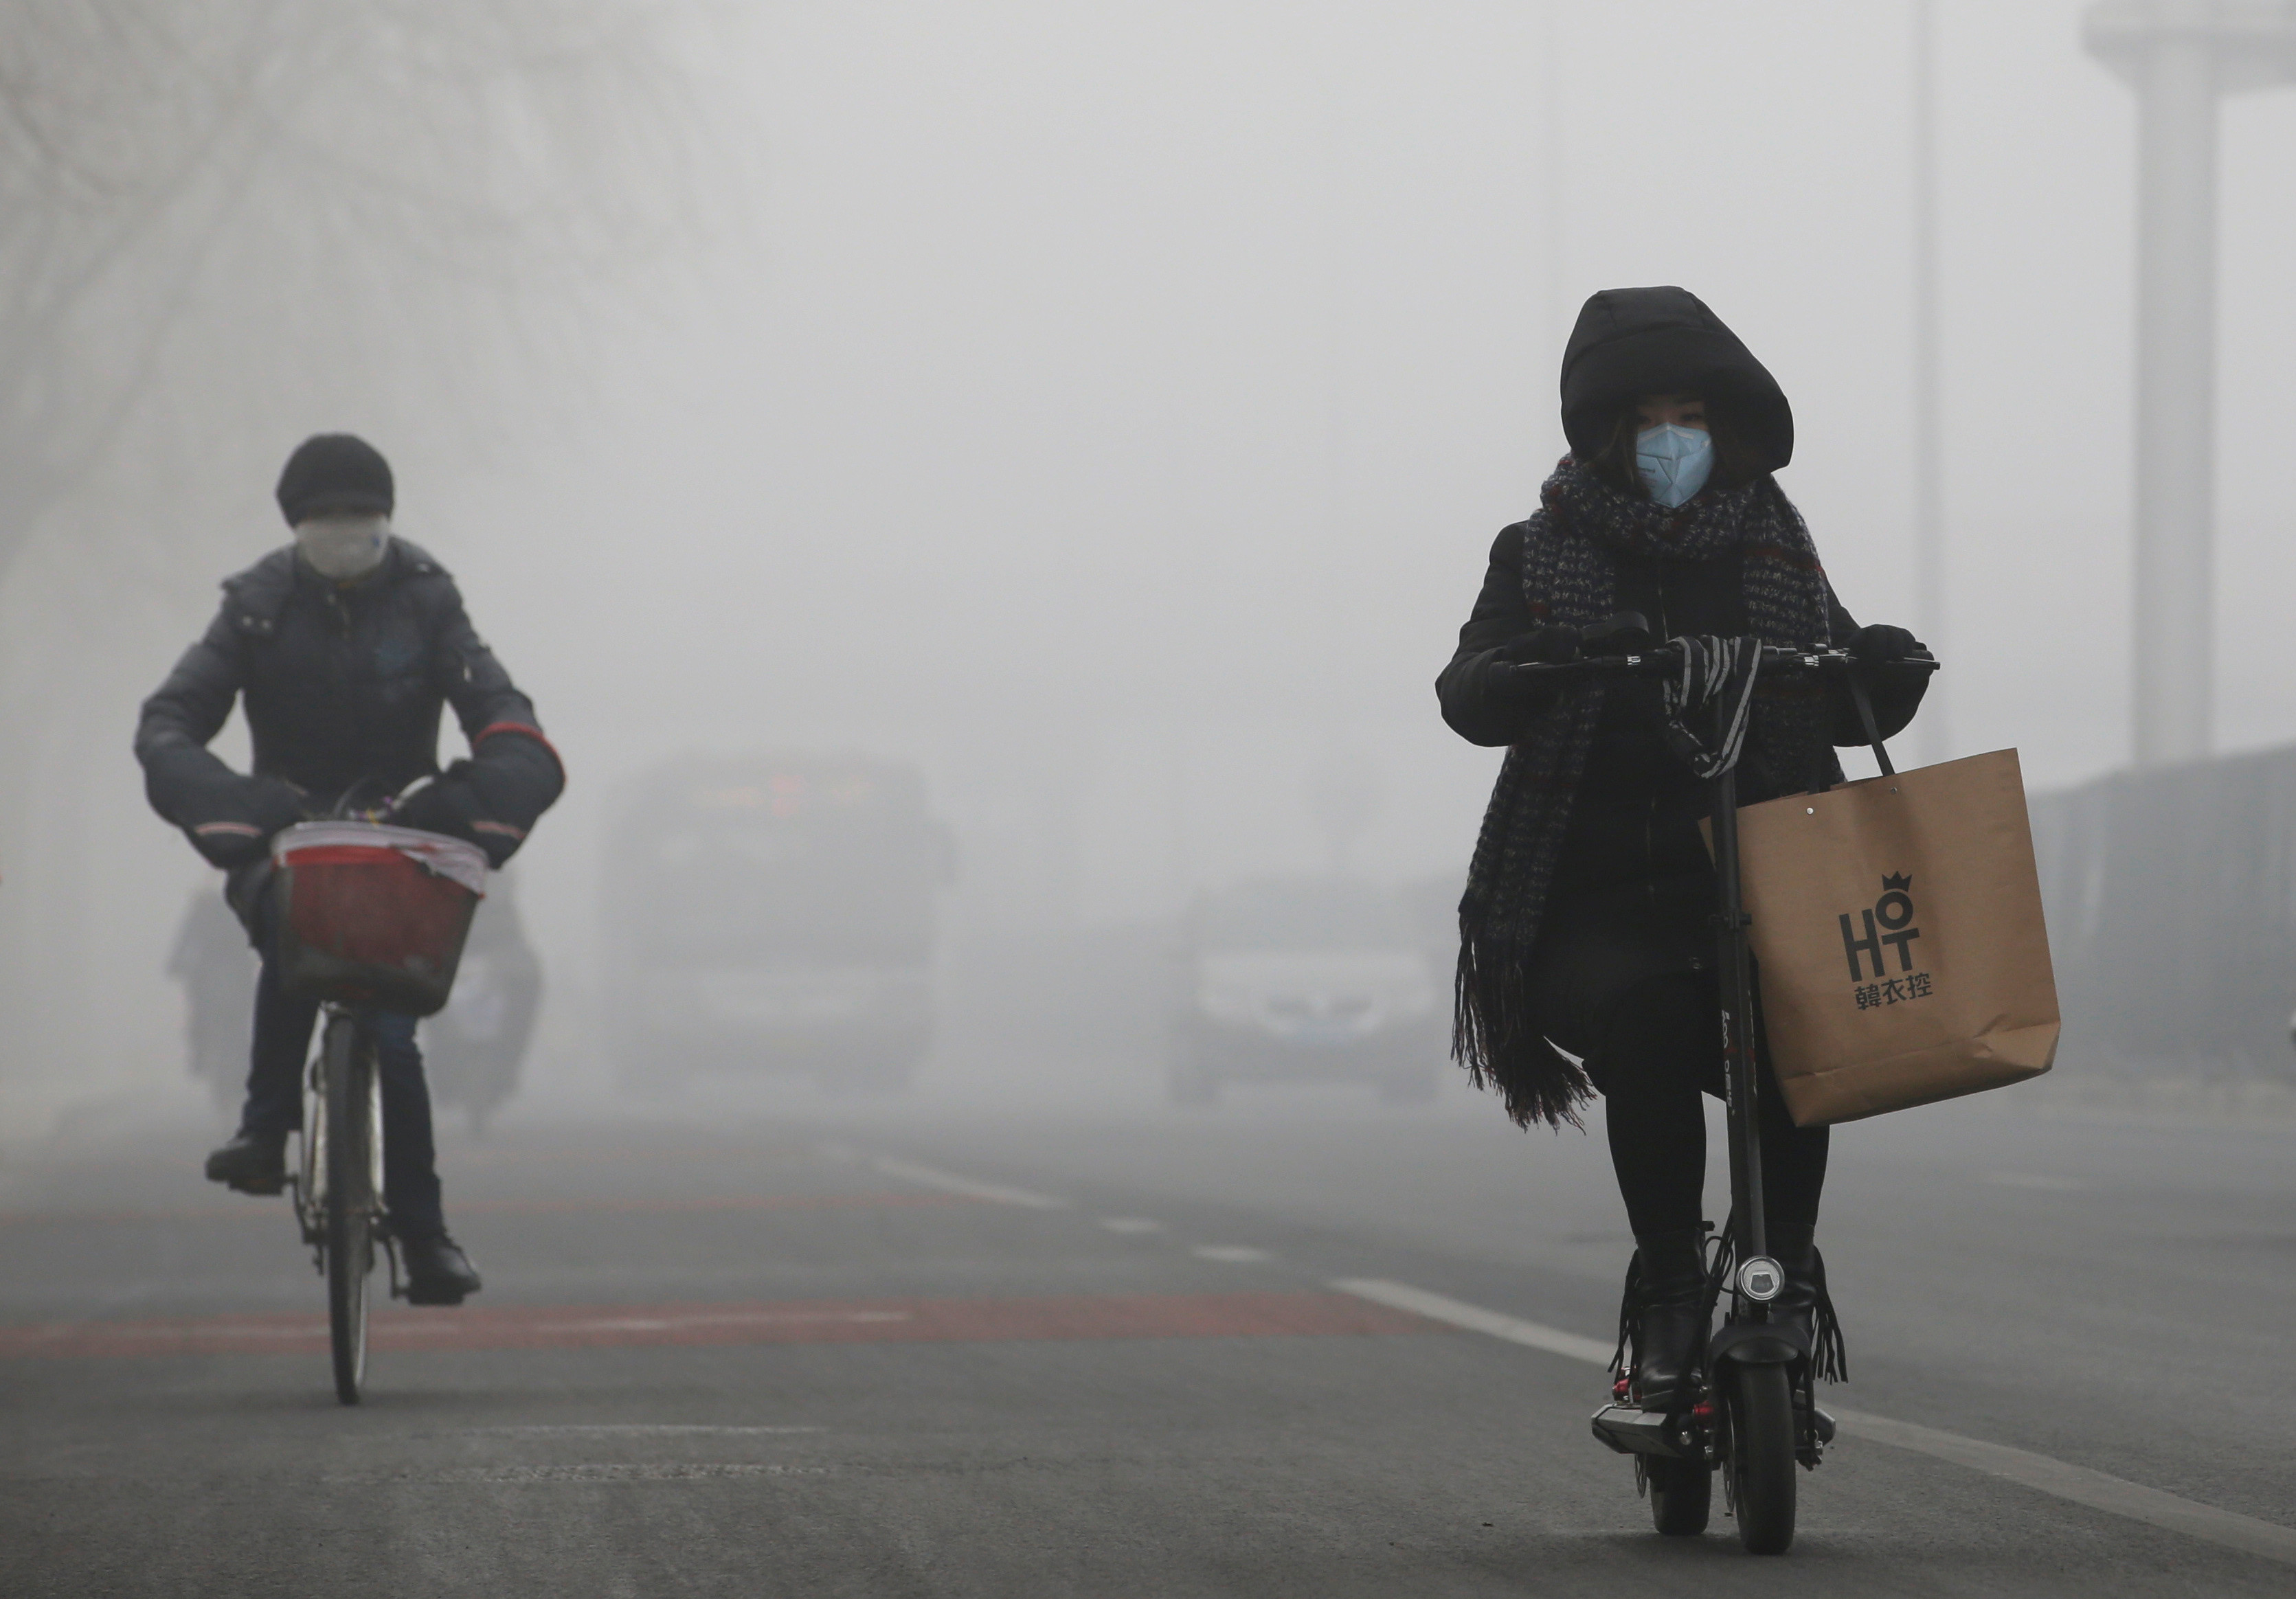 People ride amid the smog in Beijing, China, February 14, 2017. REUTERS/Jason Lee - RTSYJAS